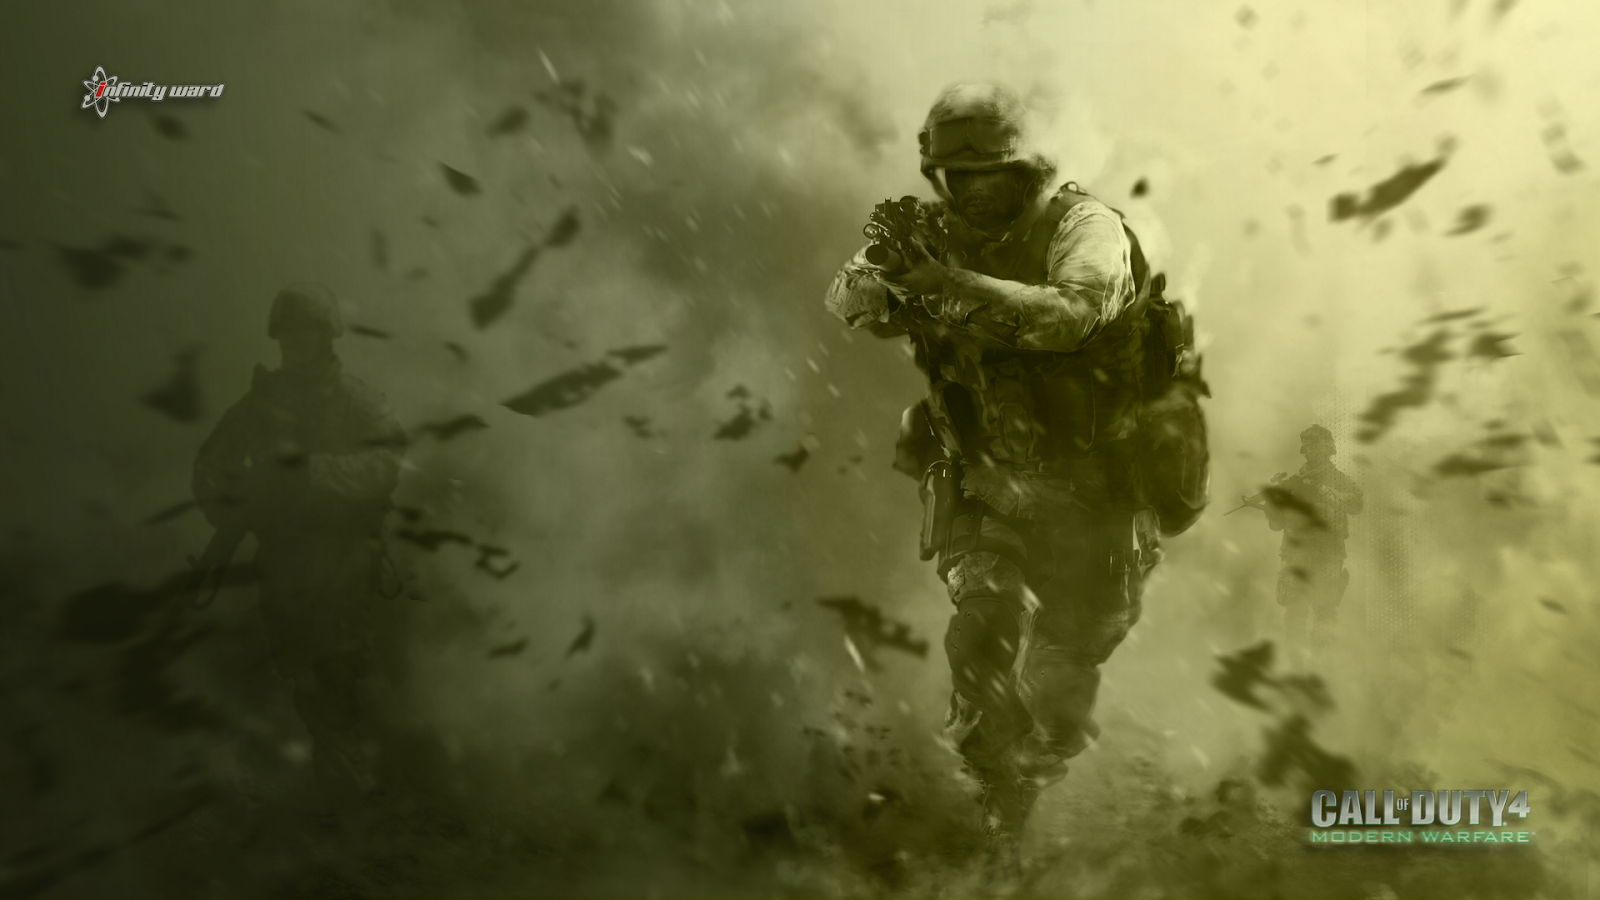 call of duty 1 wallpaper-#8